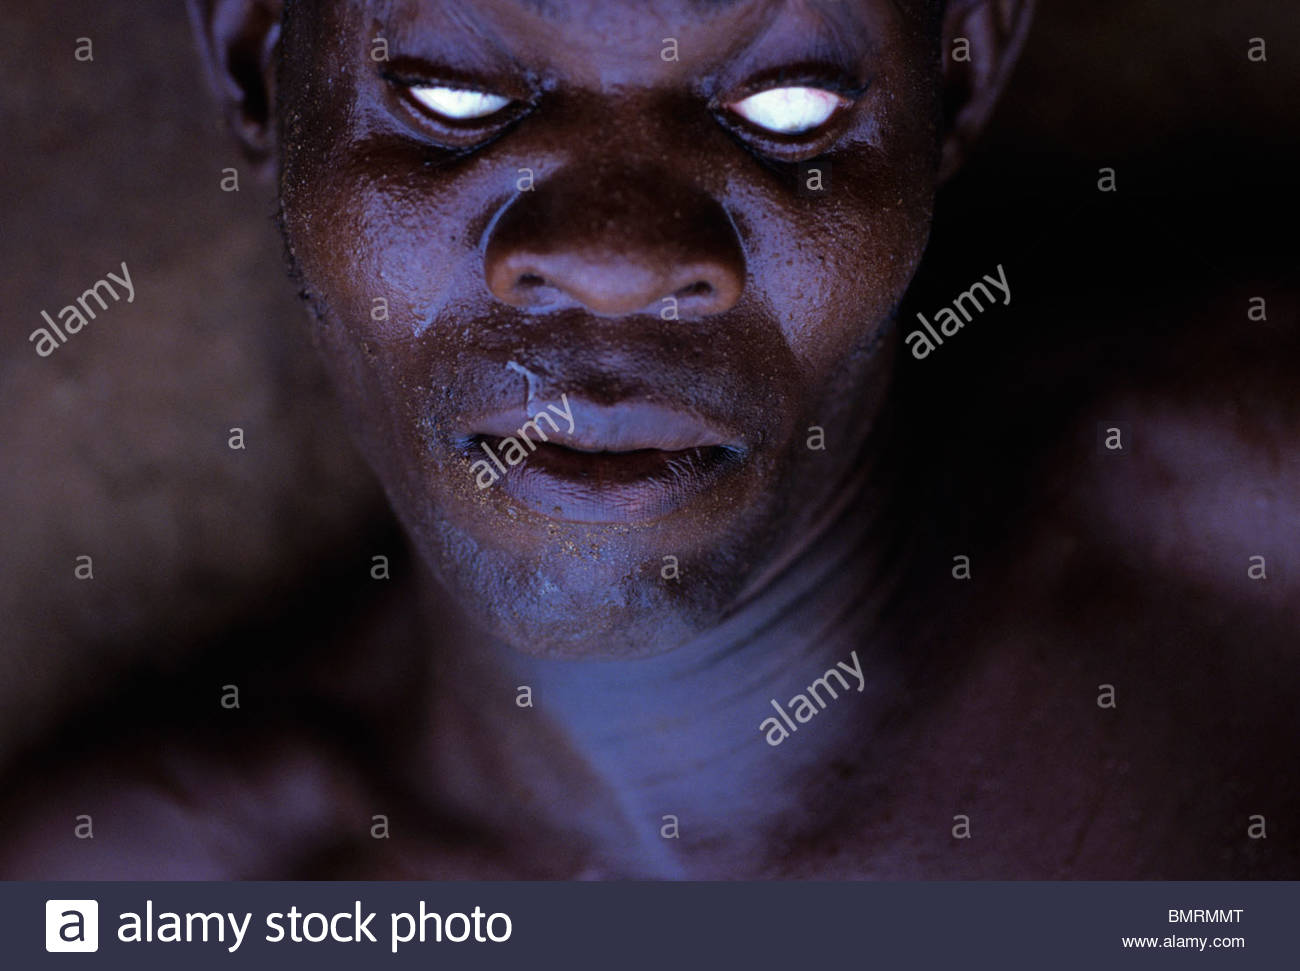 Voodoo worchiper in a trance - Stock Image